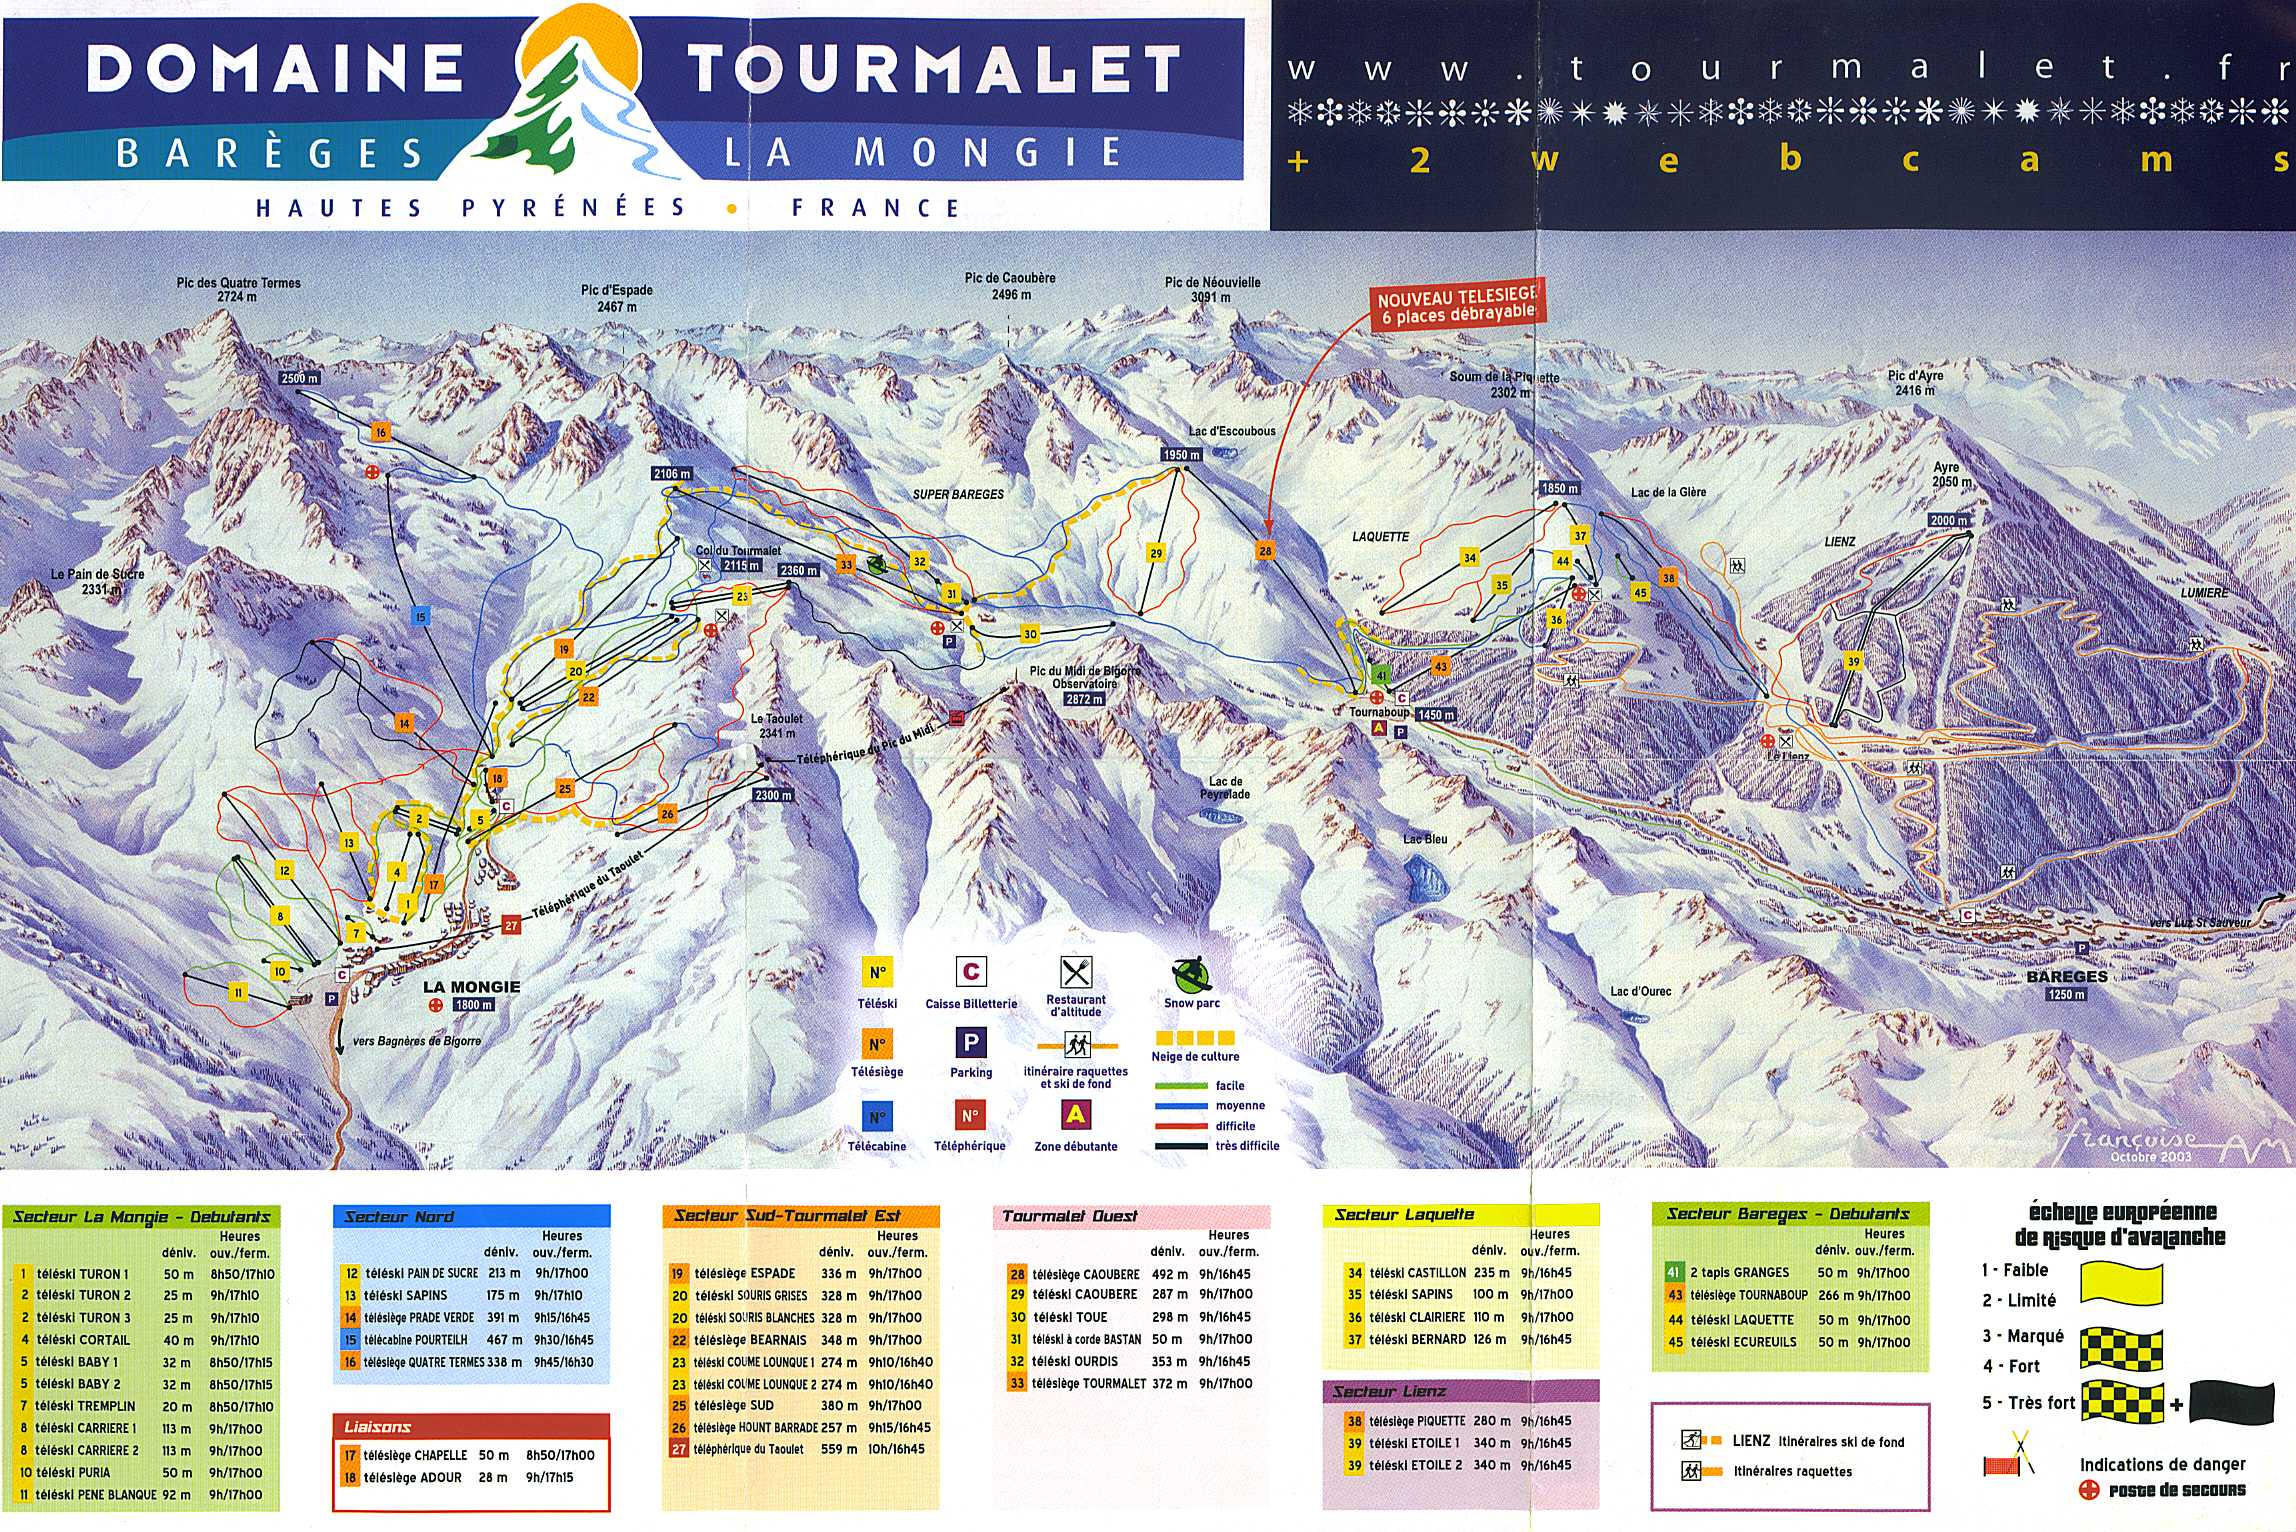 Bareges piste map